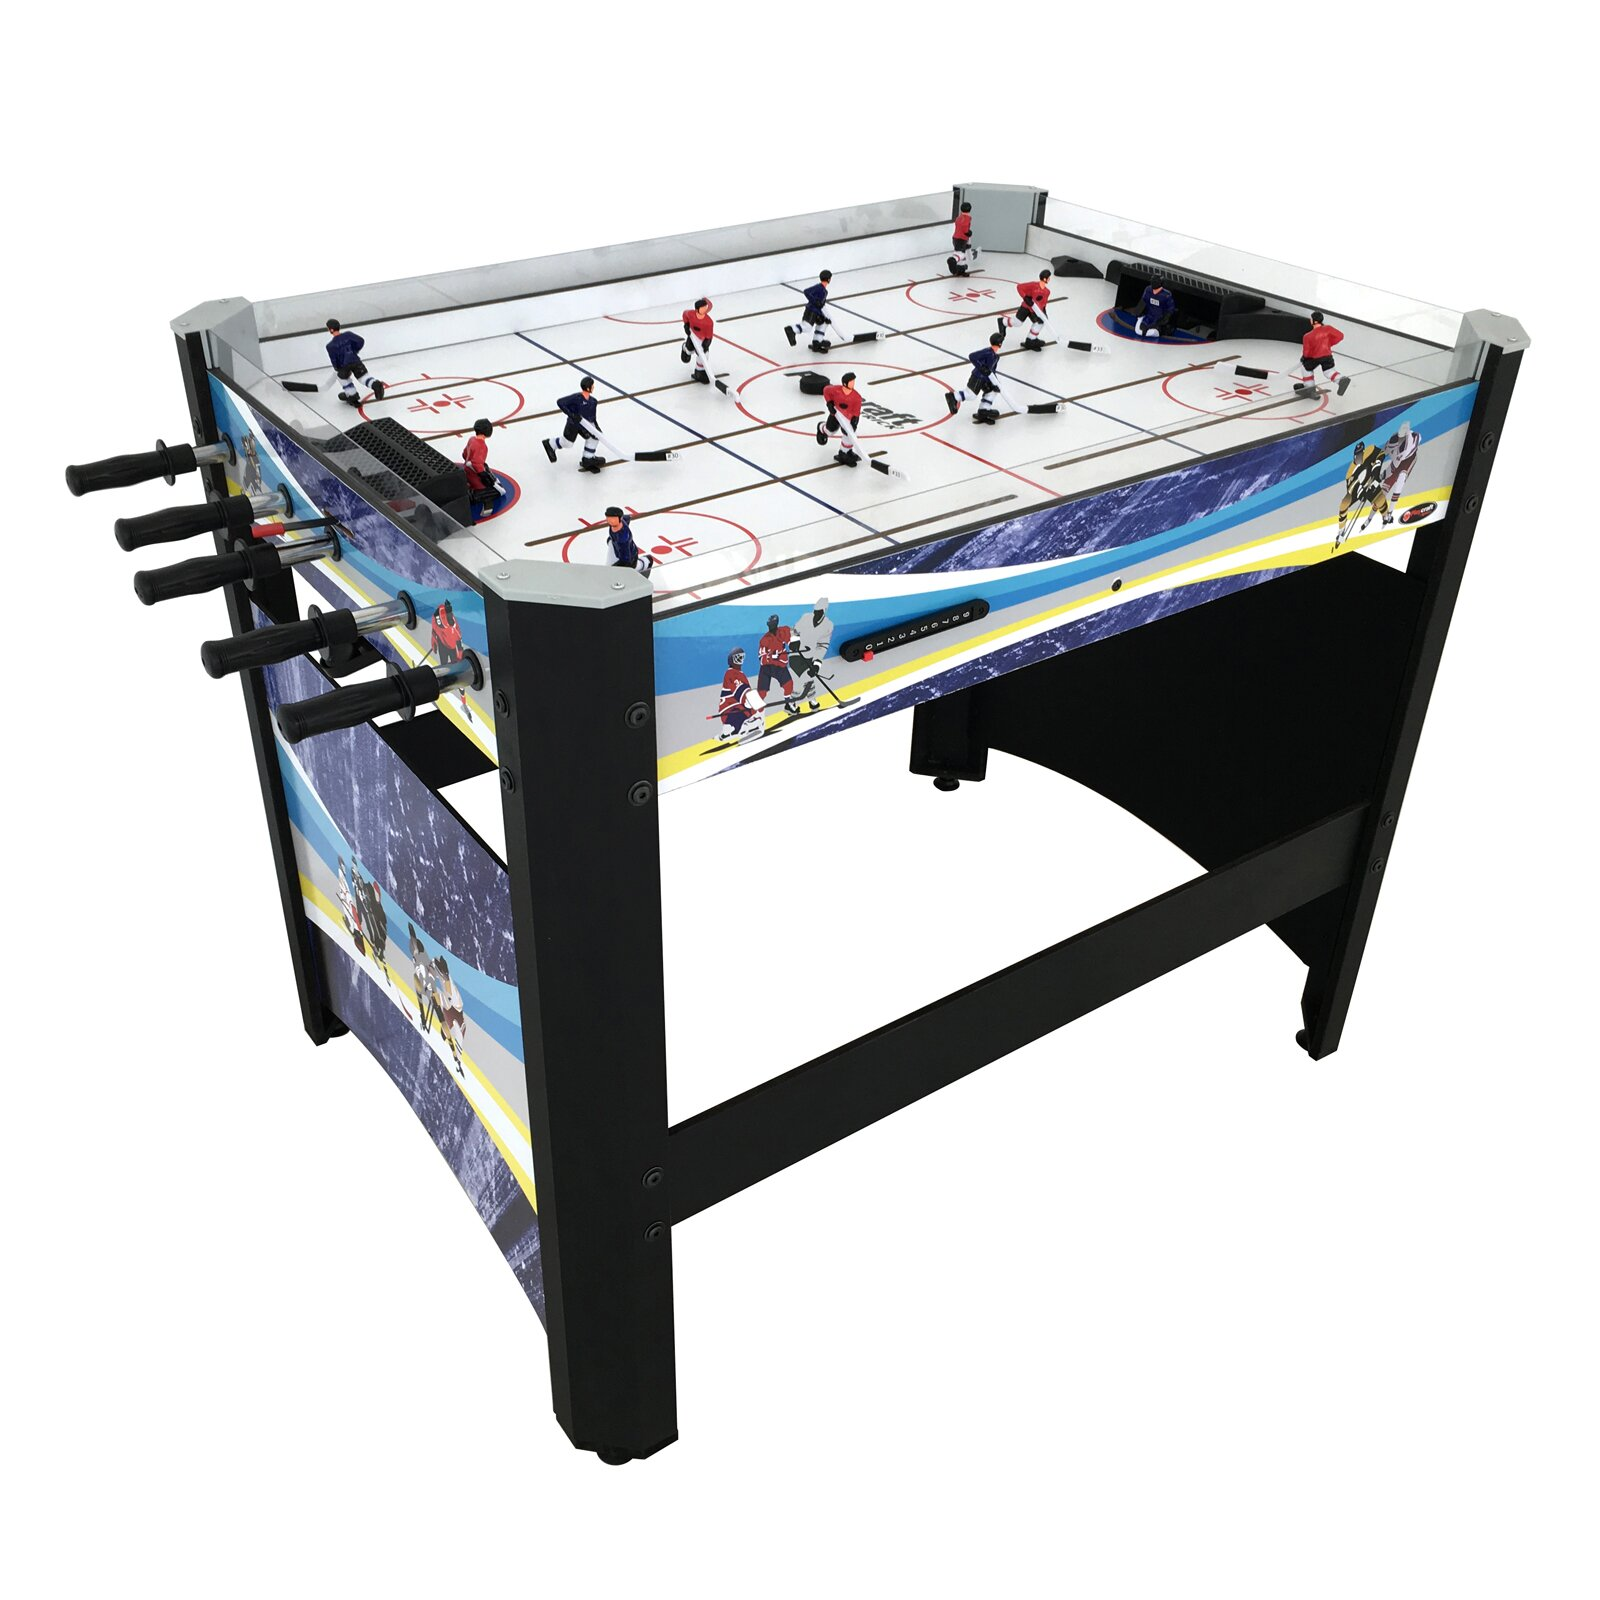 Playcraft 40 rod hockey table reviews wayfair for Table hockey